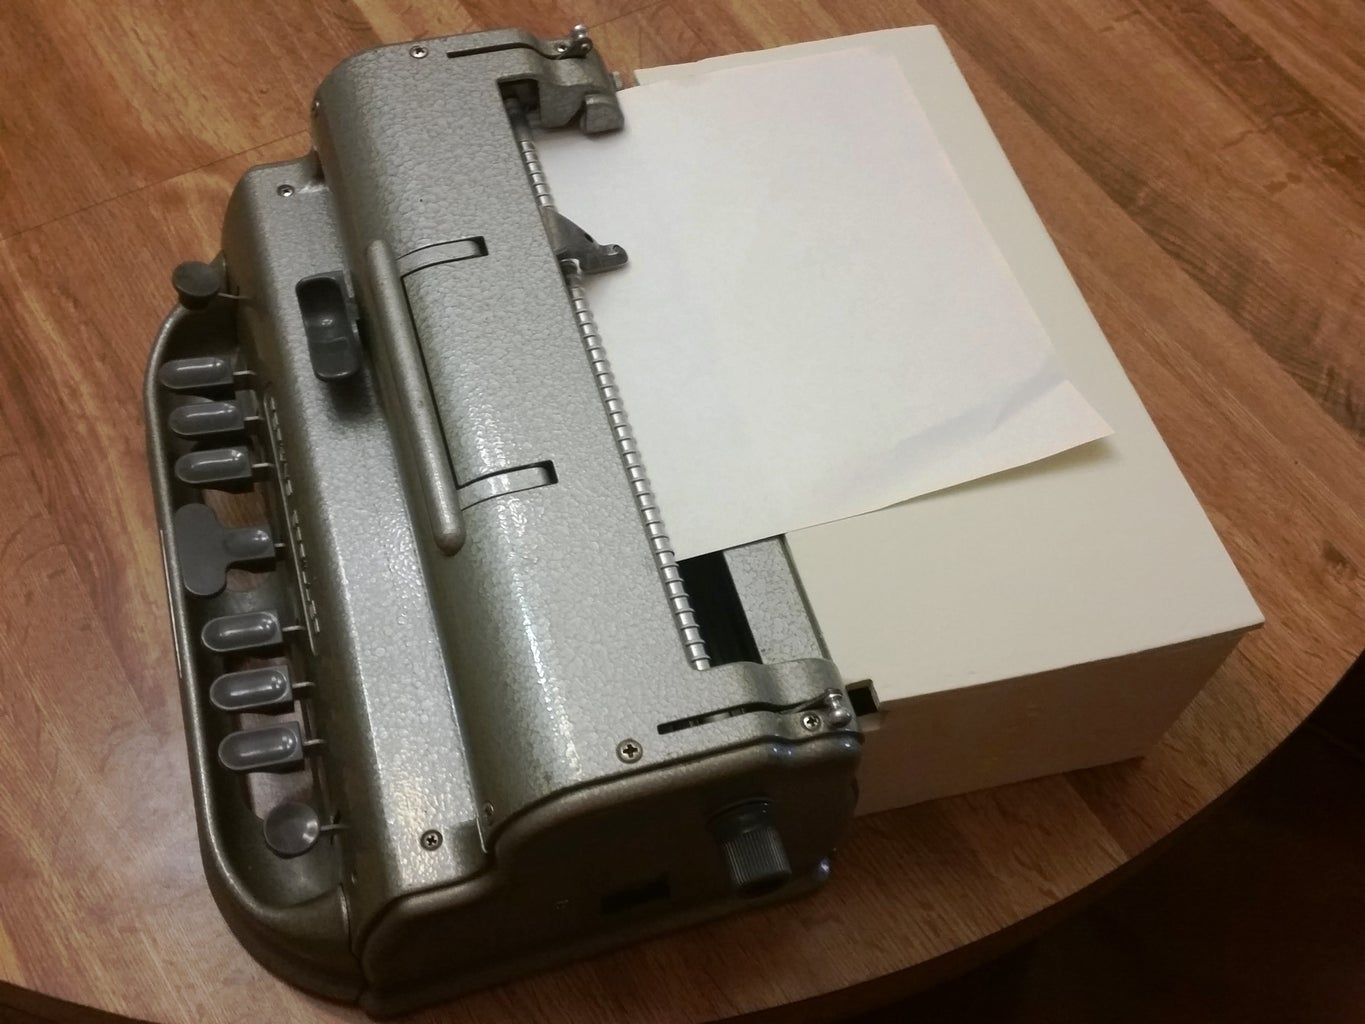 Support Table for Perkins Braille Writer